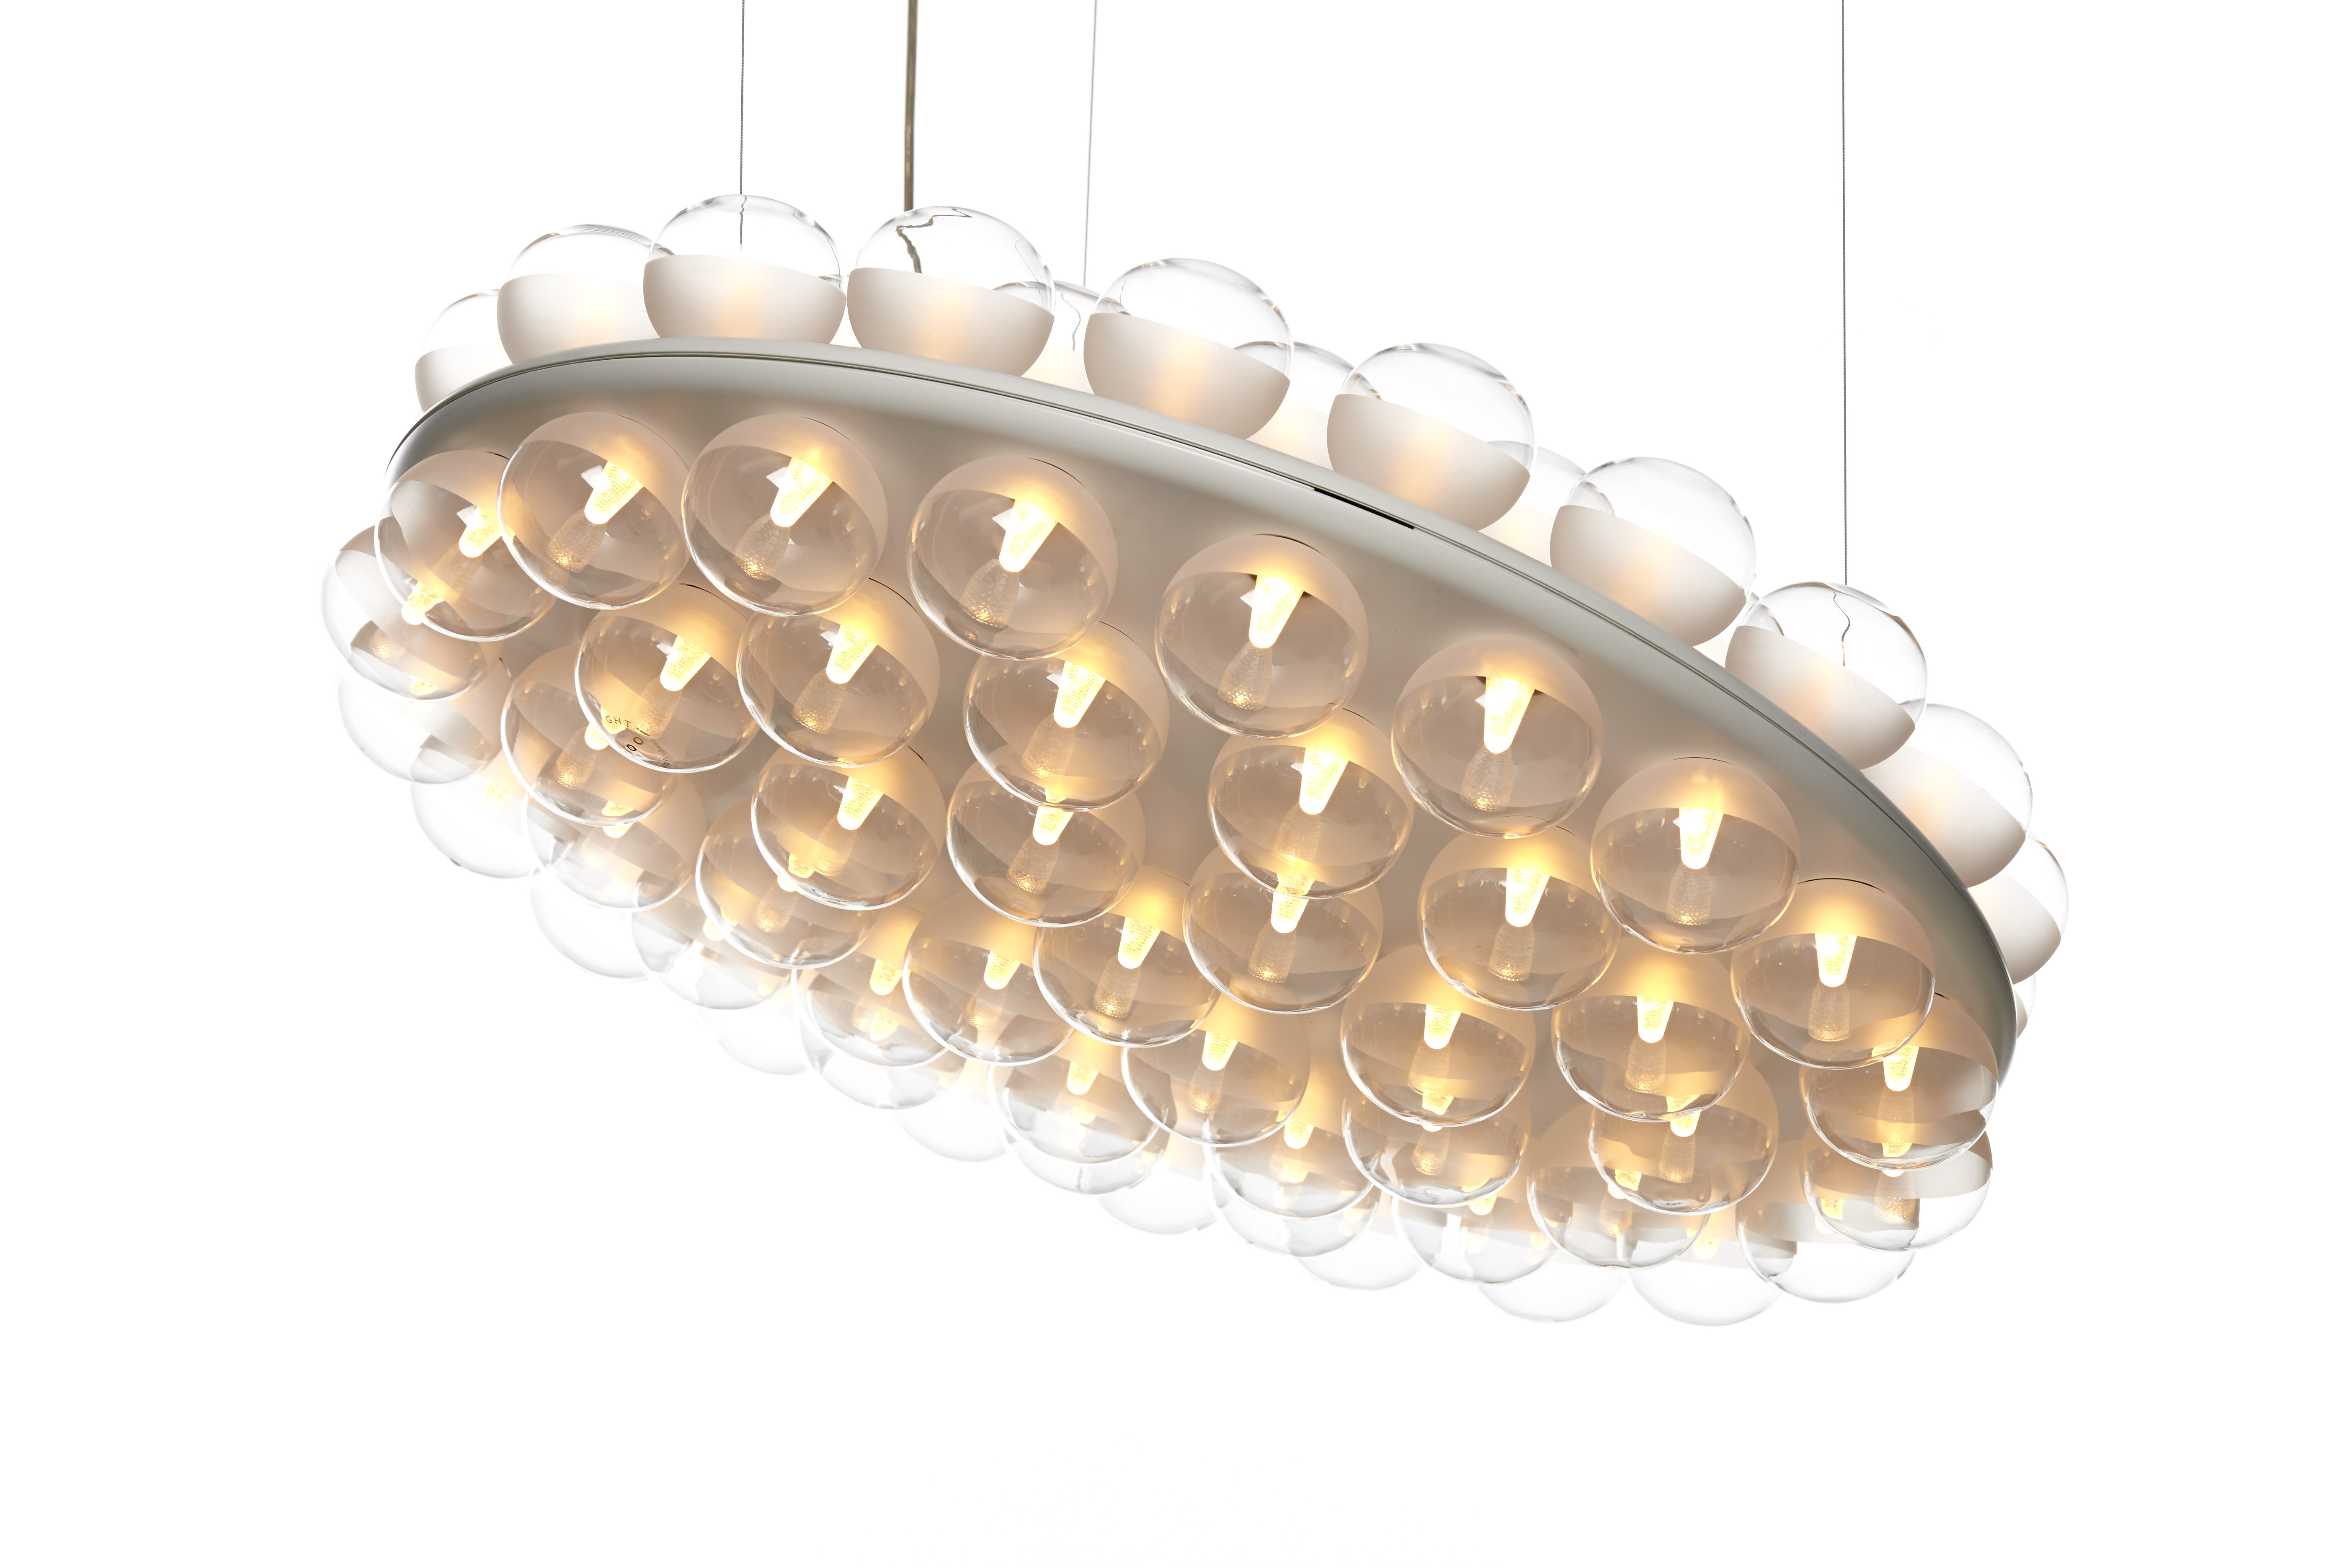 prop-light-round-double-on-185-300dpi-moooi